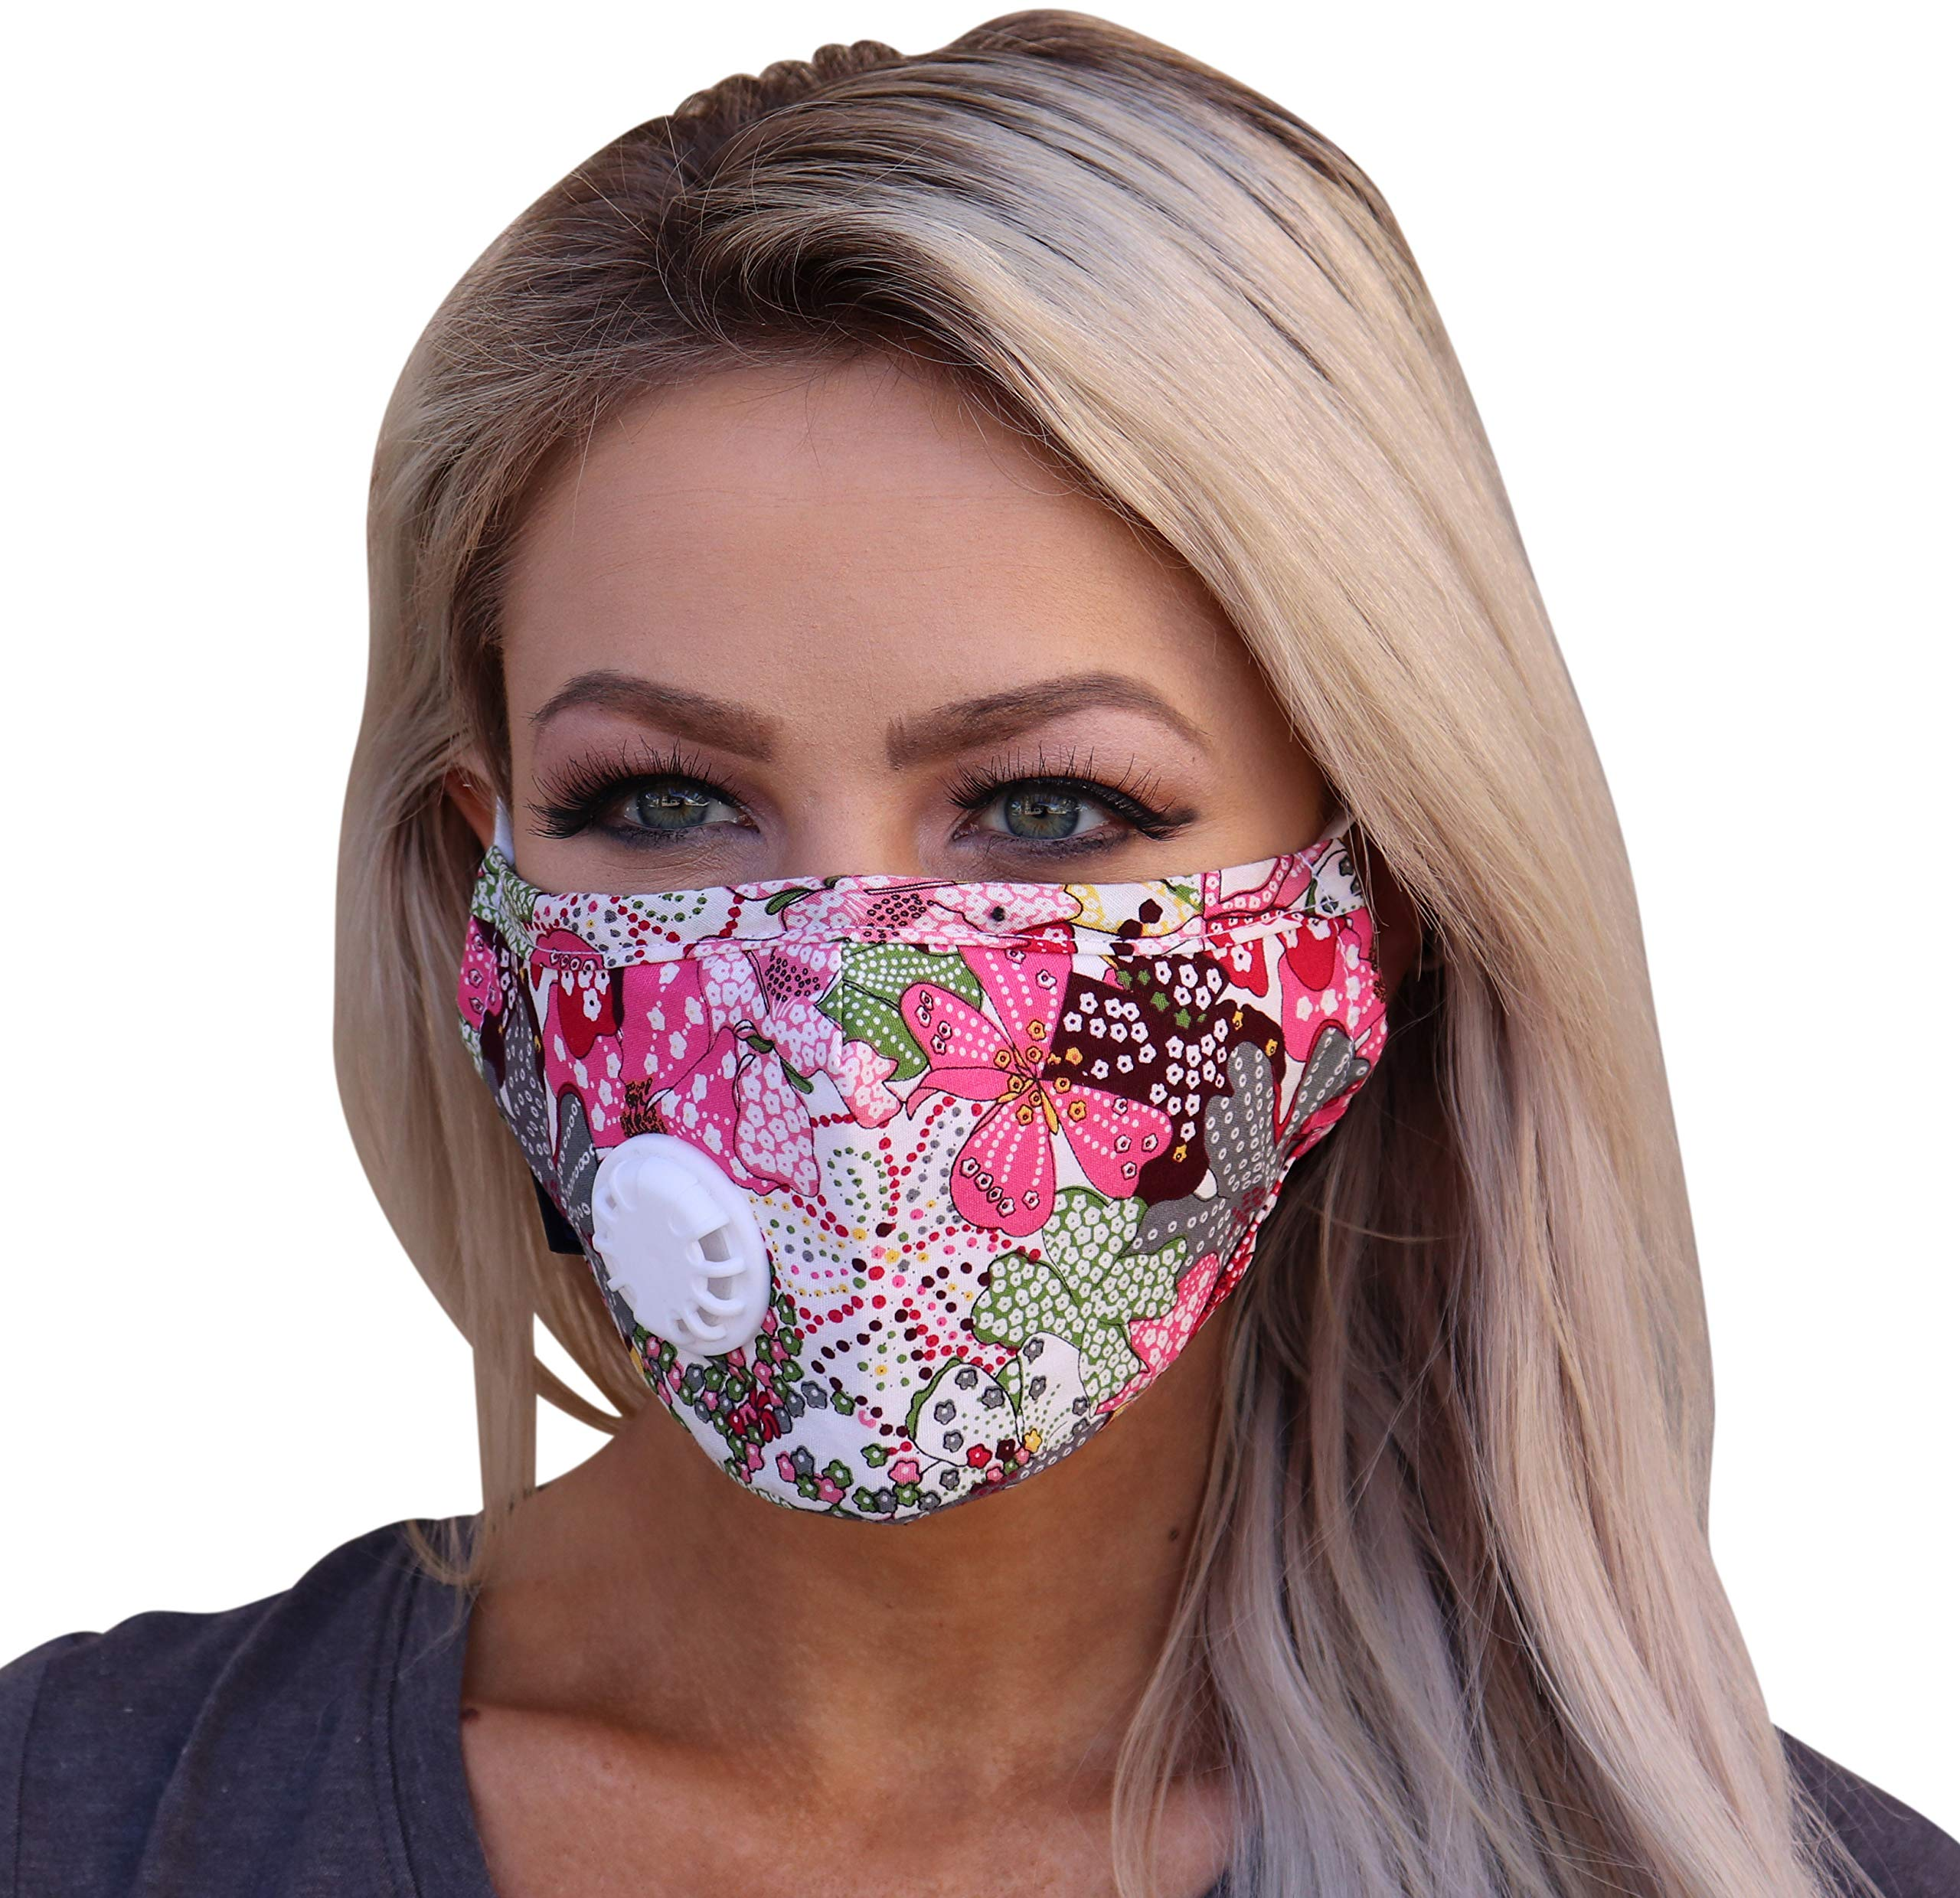 Full Seal Pollution Mask for Men & Women - Reusable Cotton Air Filter Mask With Adjustable Ear Loops Perfect for Blocking Pollution Dust Pollen and Germs (Includes 4 Carbon Filters N99) (Pink-Flower) by Live Right Project